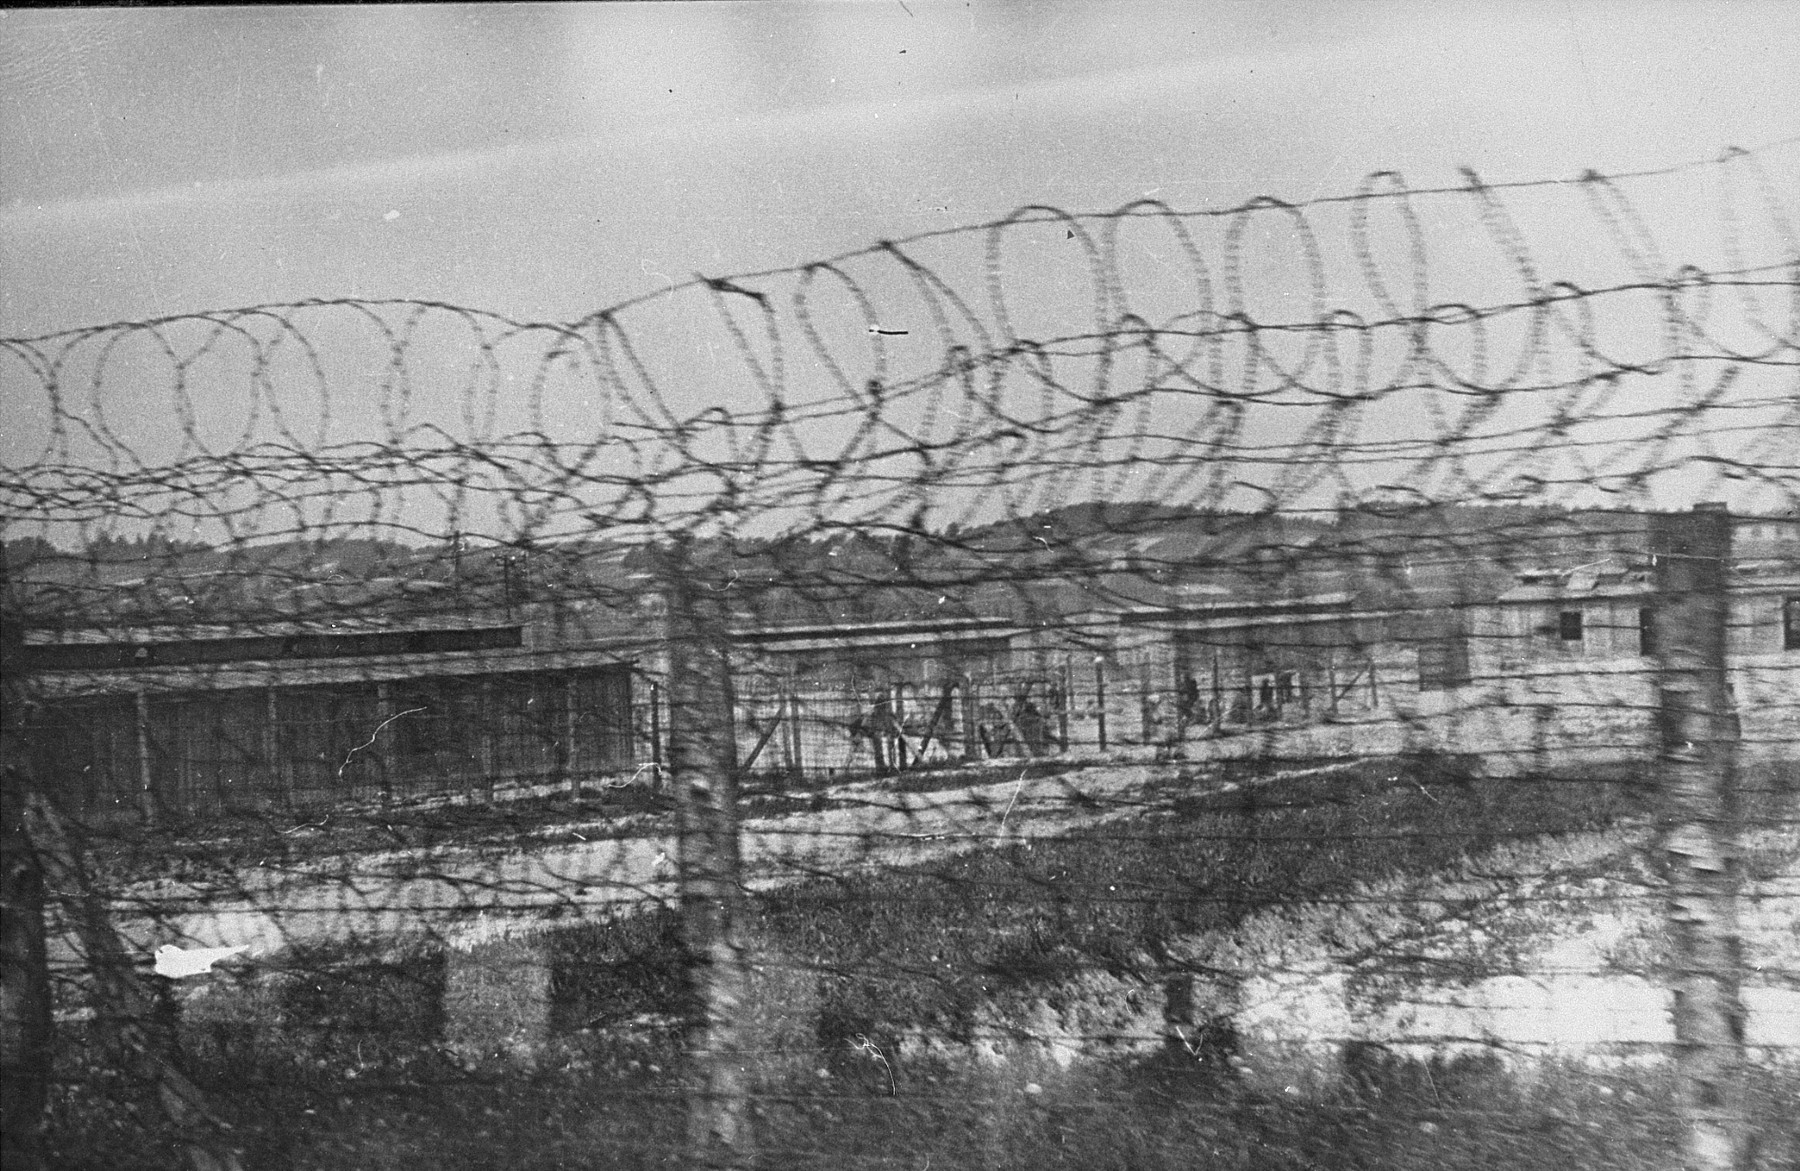 A section of the Plaszow concentration camp behind barbed wire.